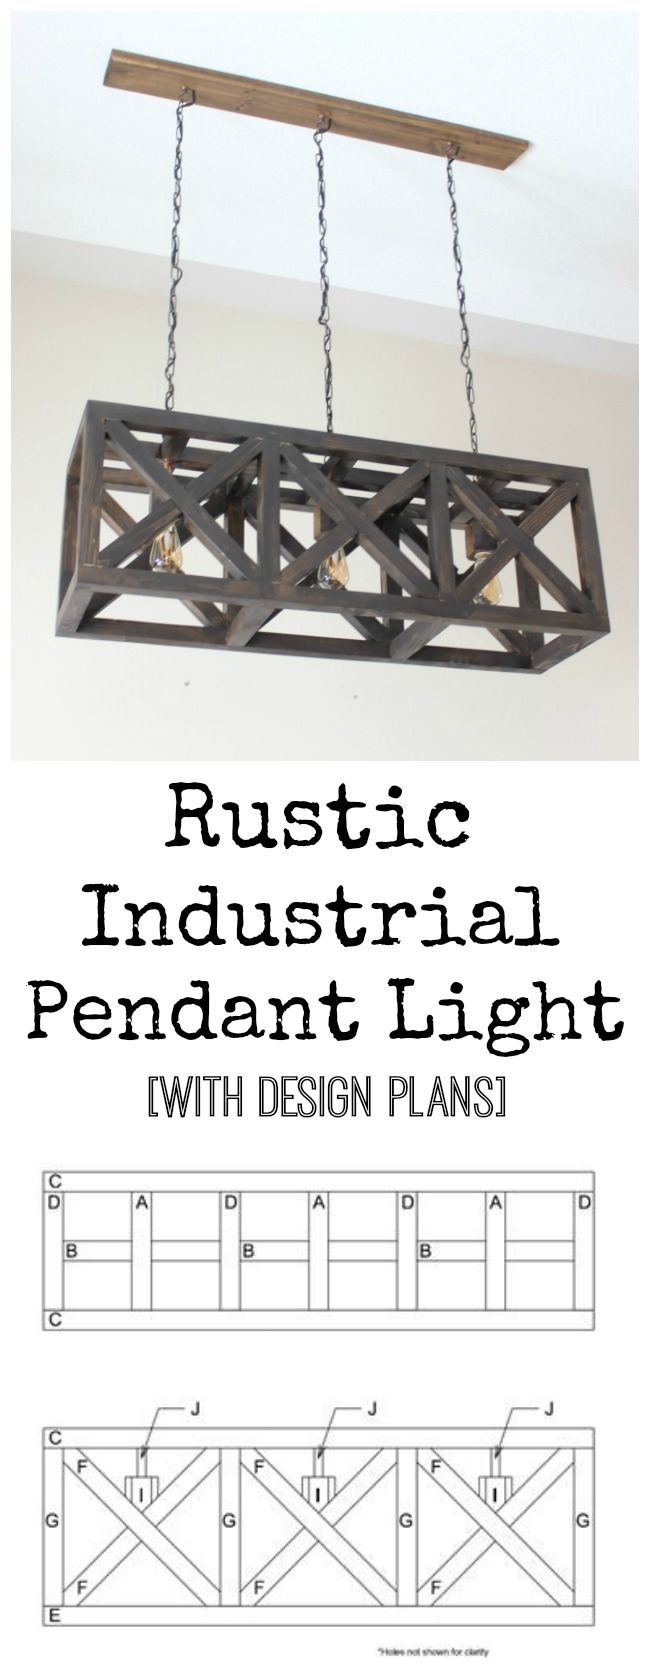 Industrial Pendant Light LightsRustic IndustrialDiy